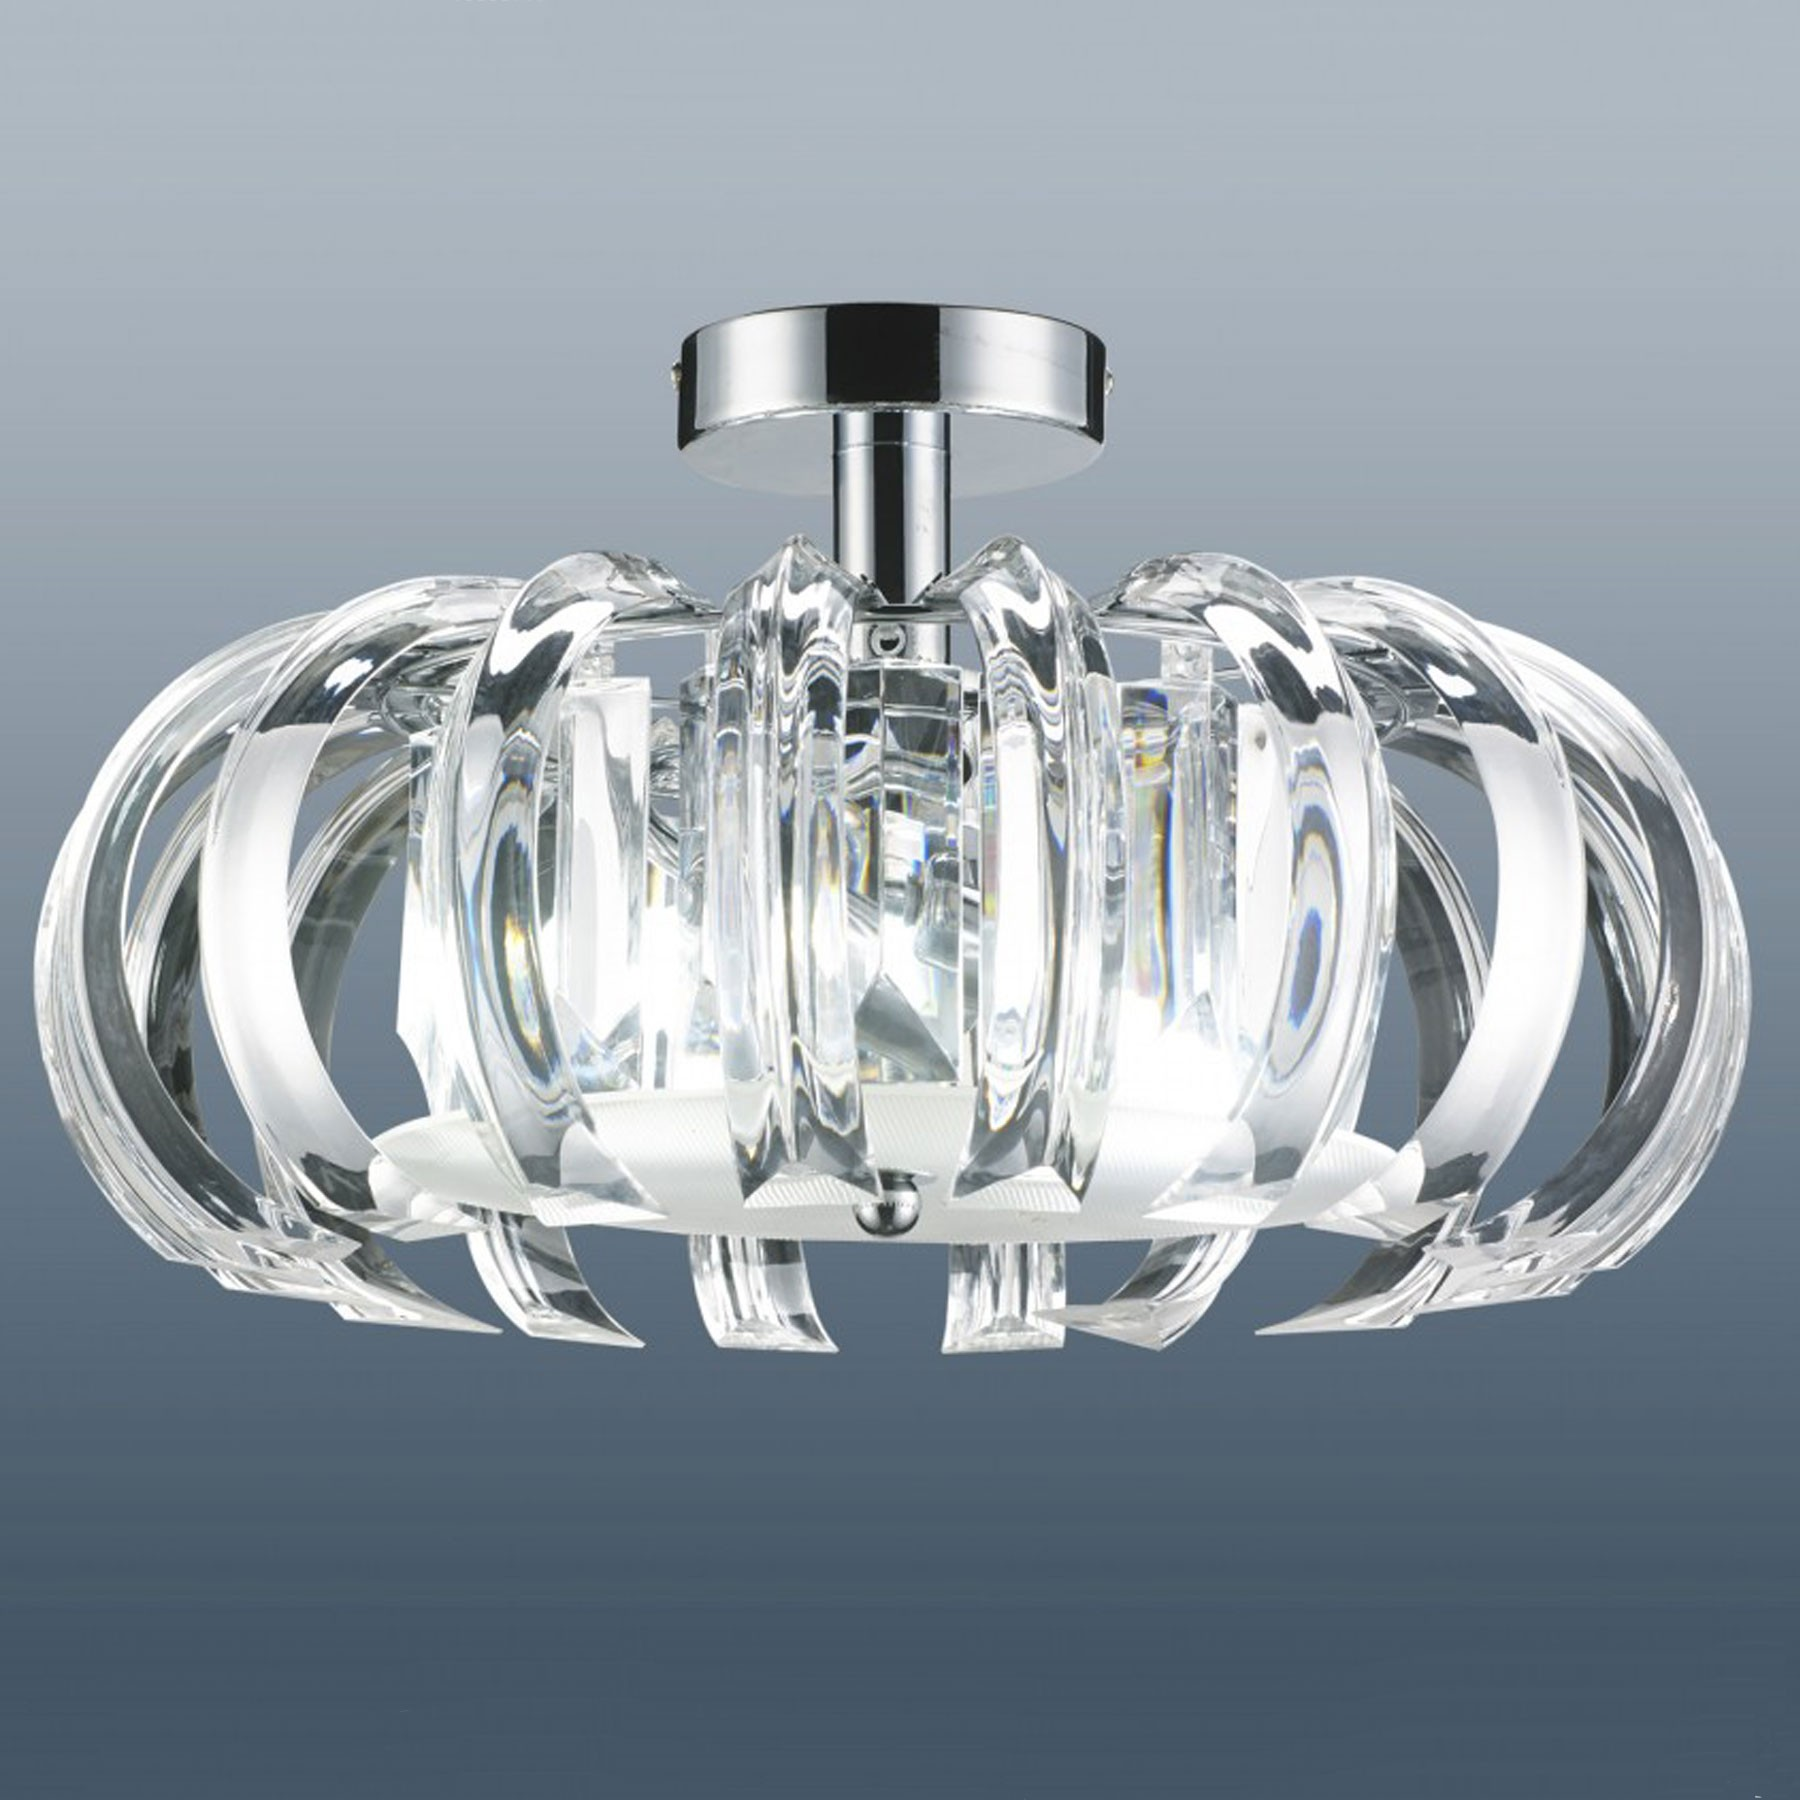 Excellent semi flush ceiling light for home lighting design with brushed nickel semi flush ceiling light